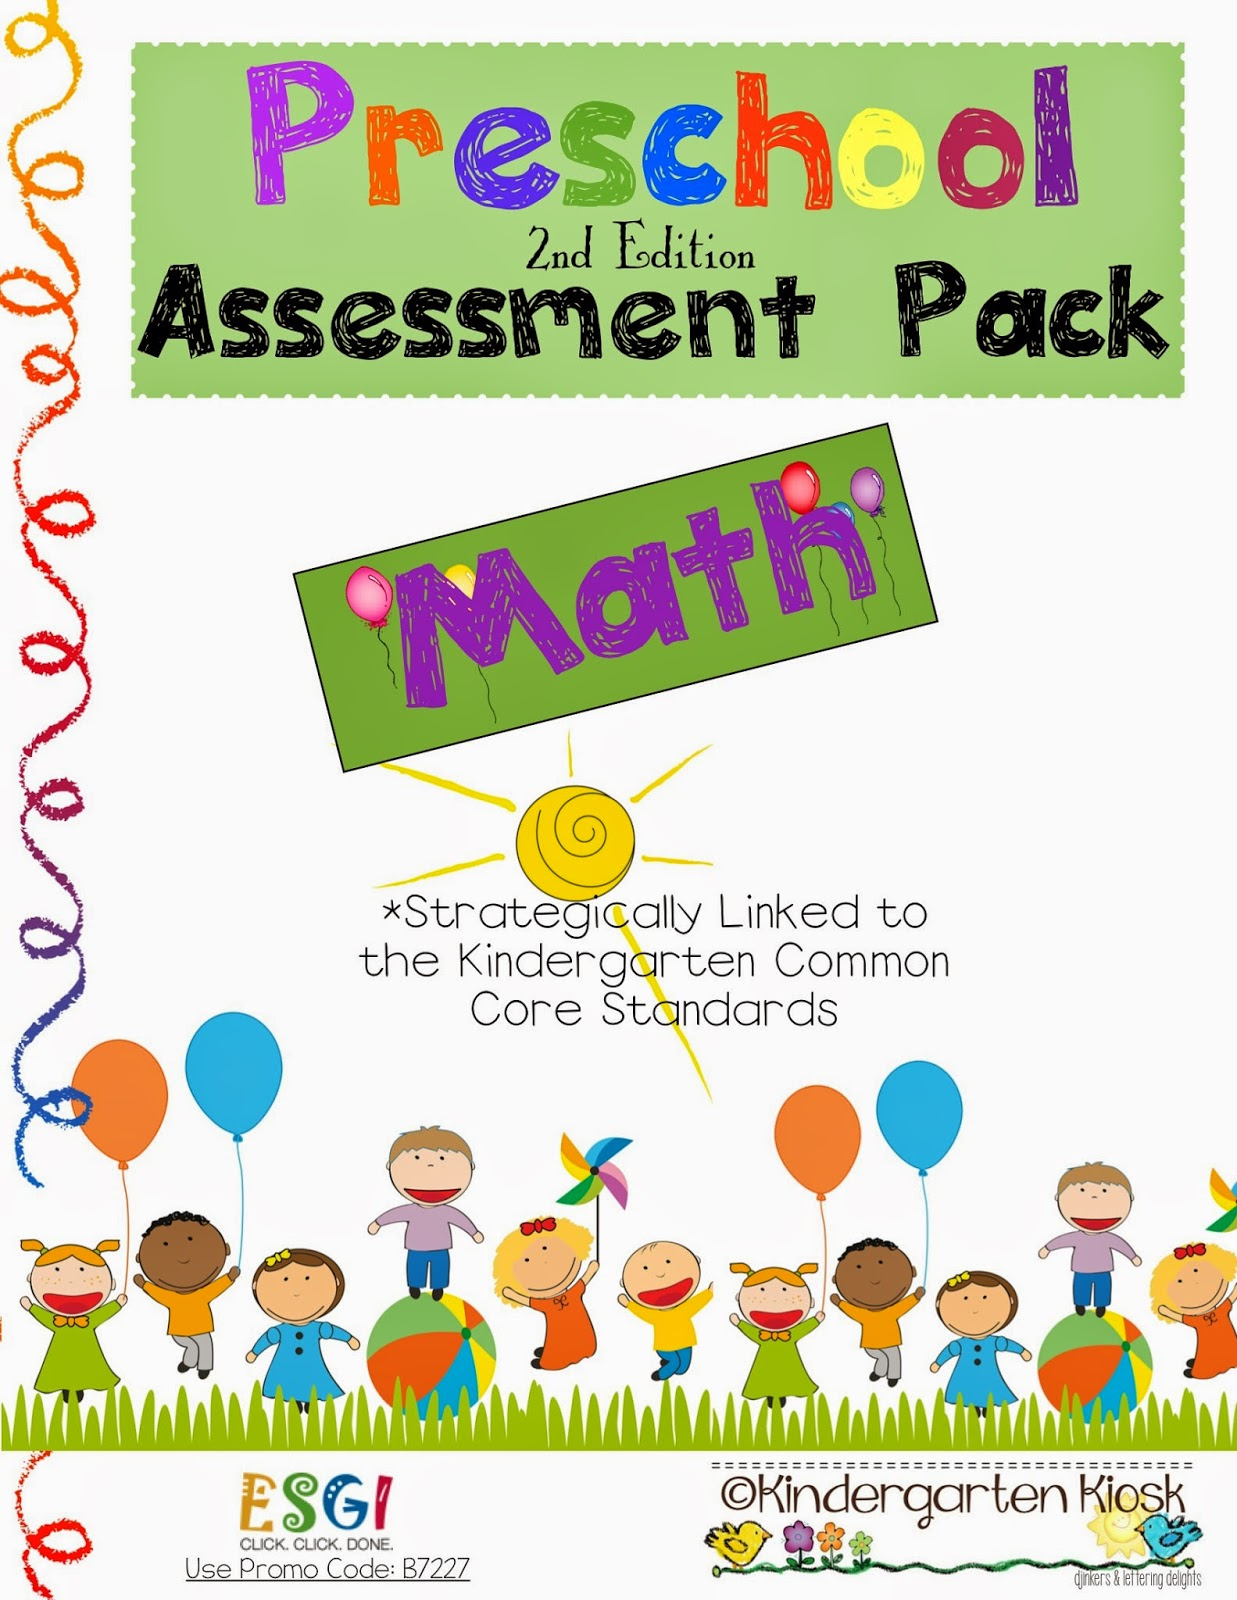 Kindergarten Kiosk Preschool Assessments